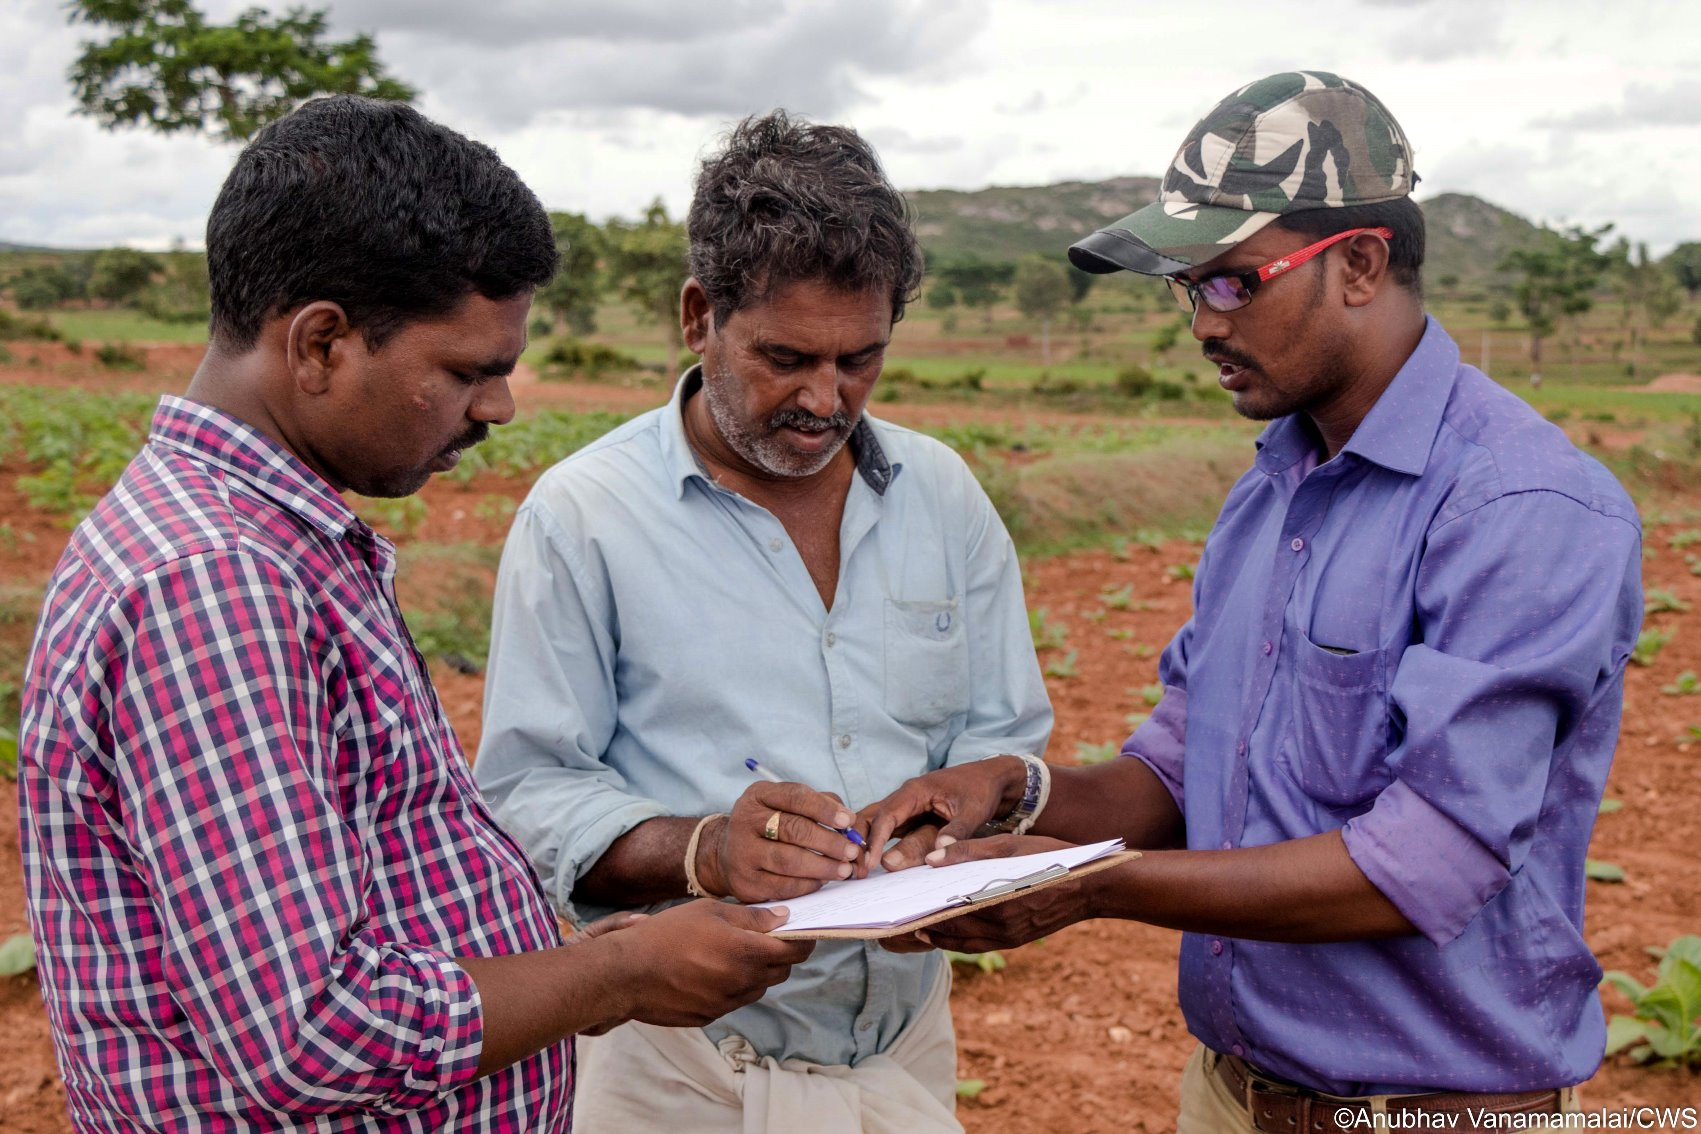 Wild Seve field assistant (right) using the pen and paper method to record villagers' complaints of crop damage by wildlife. Data are now recorded electronically.